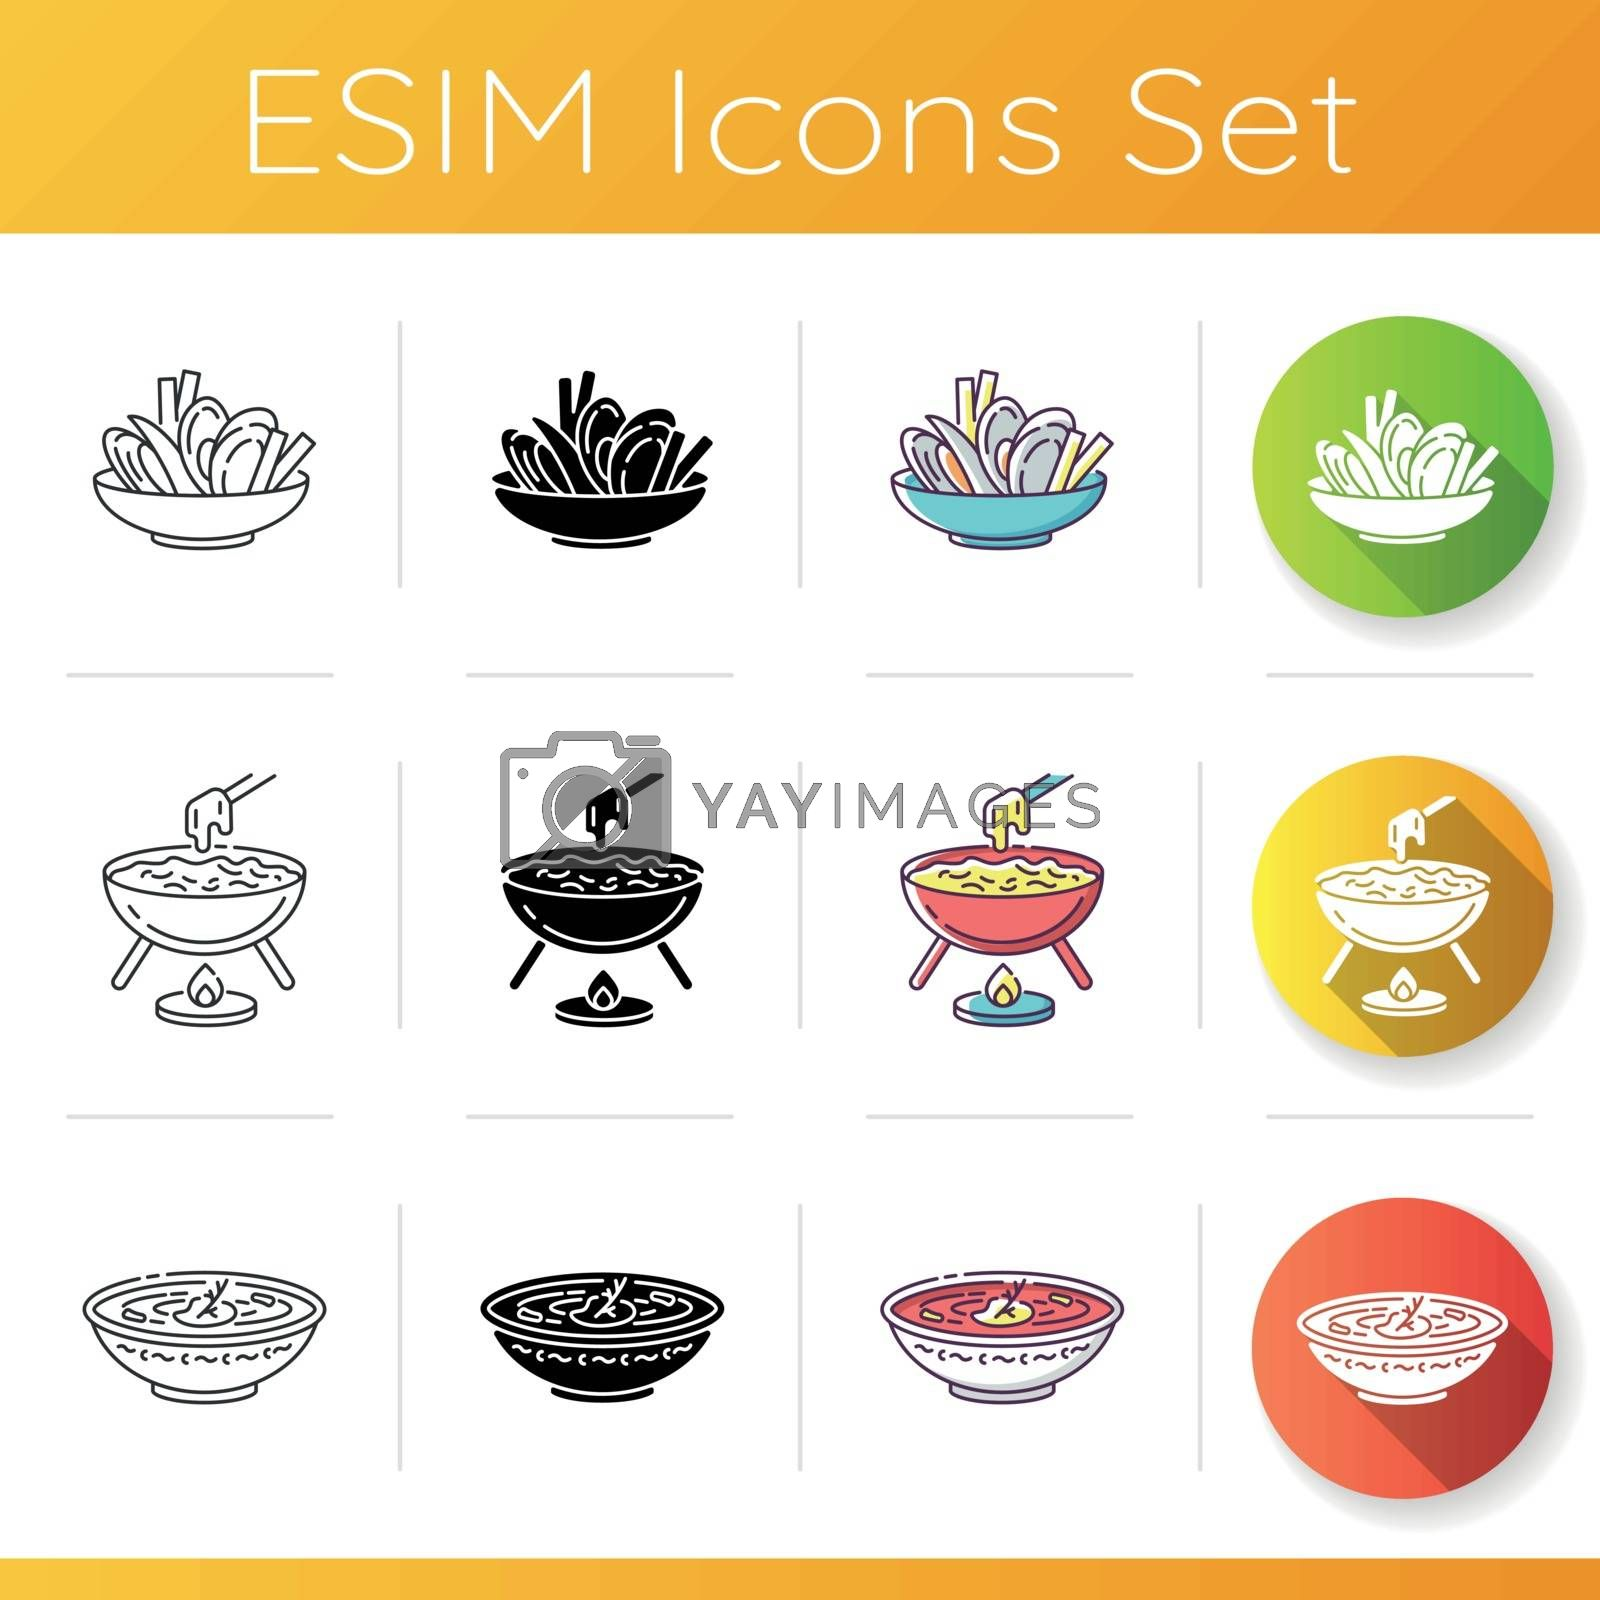 Traditional dish icons set. Mussels with fries. French cheese fondu. Ukrainian borscht. European cuisine. Restaurant meal. Linear, black and RGB color styles. Isolated vector illustrations